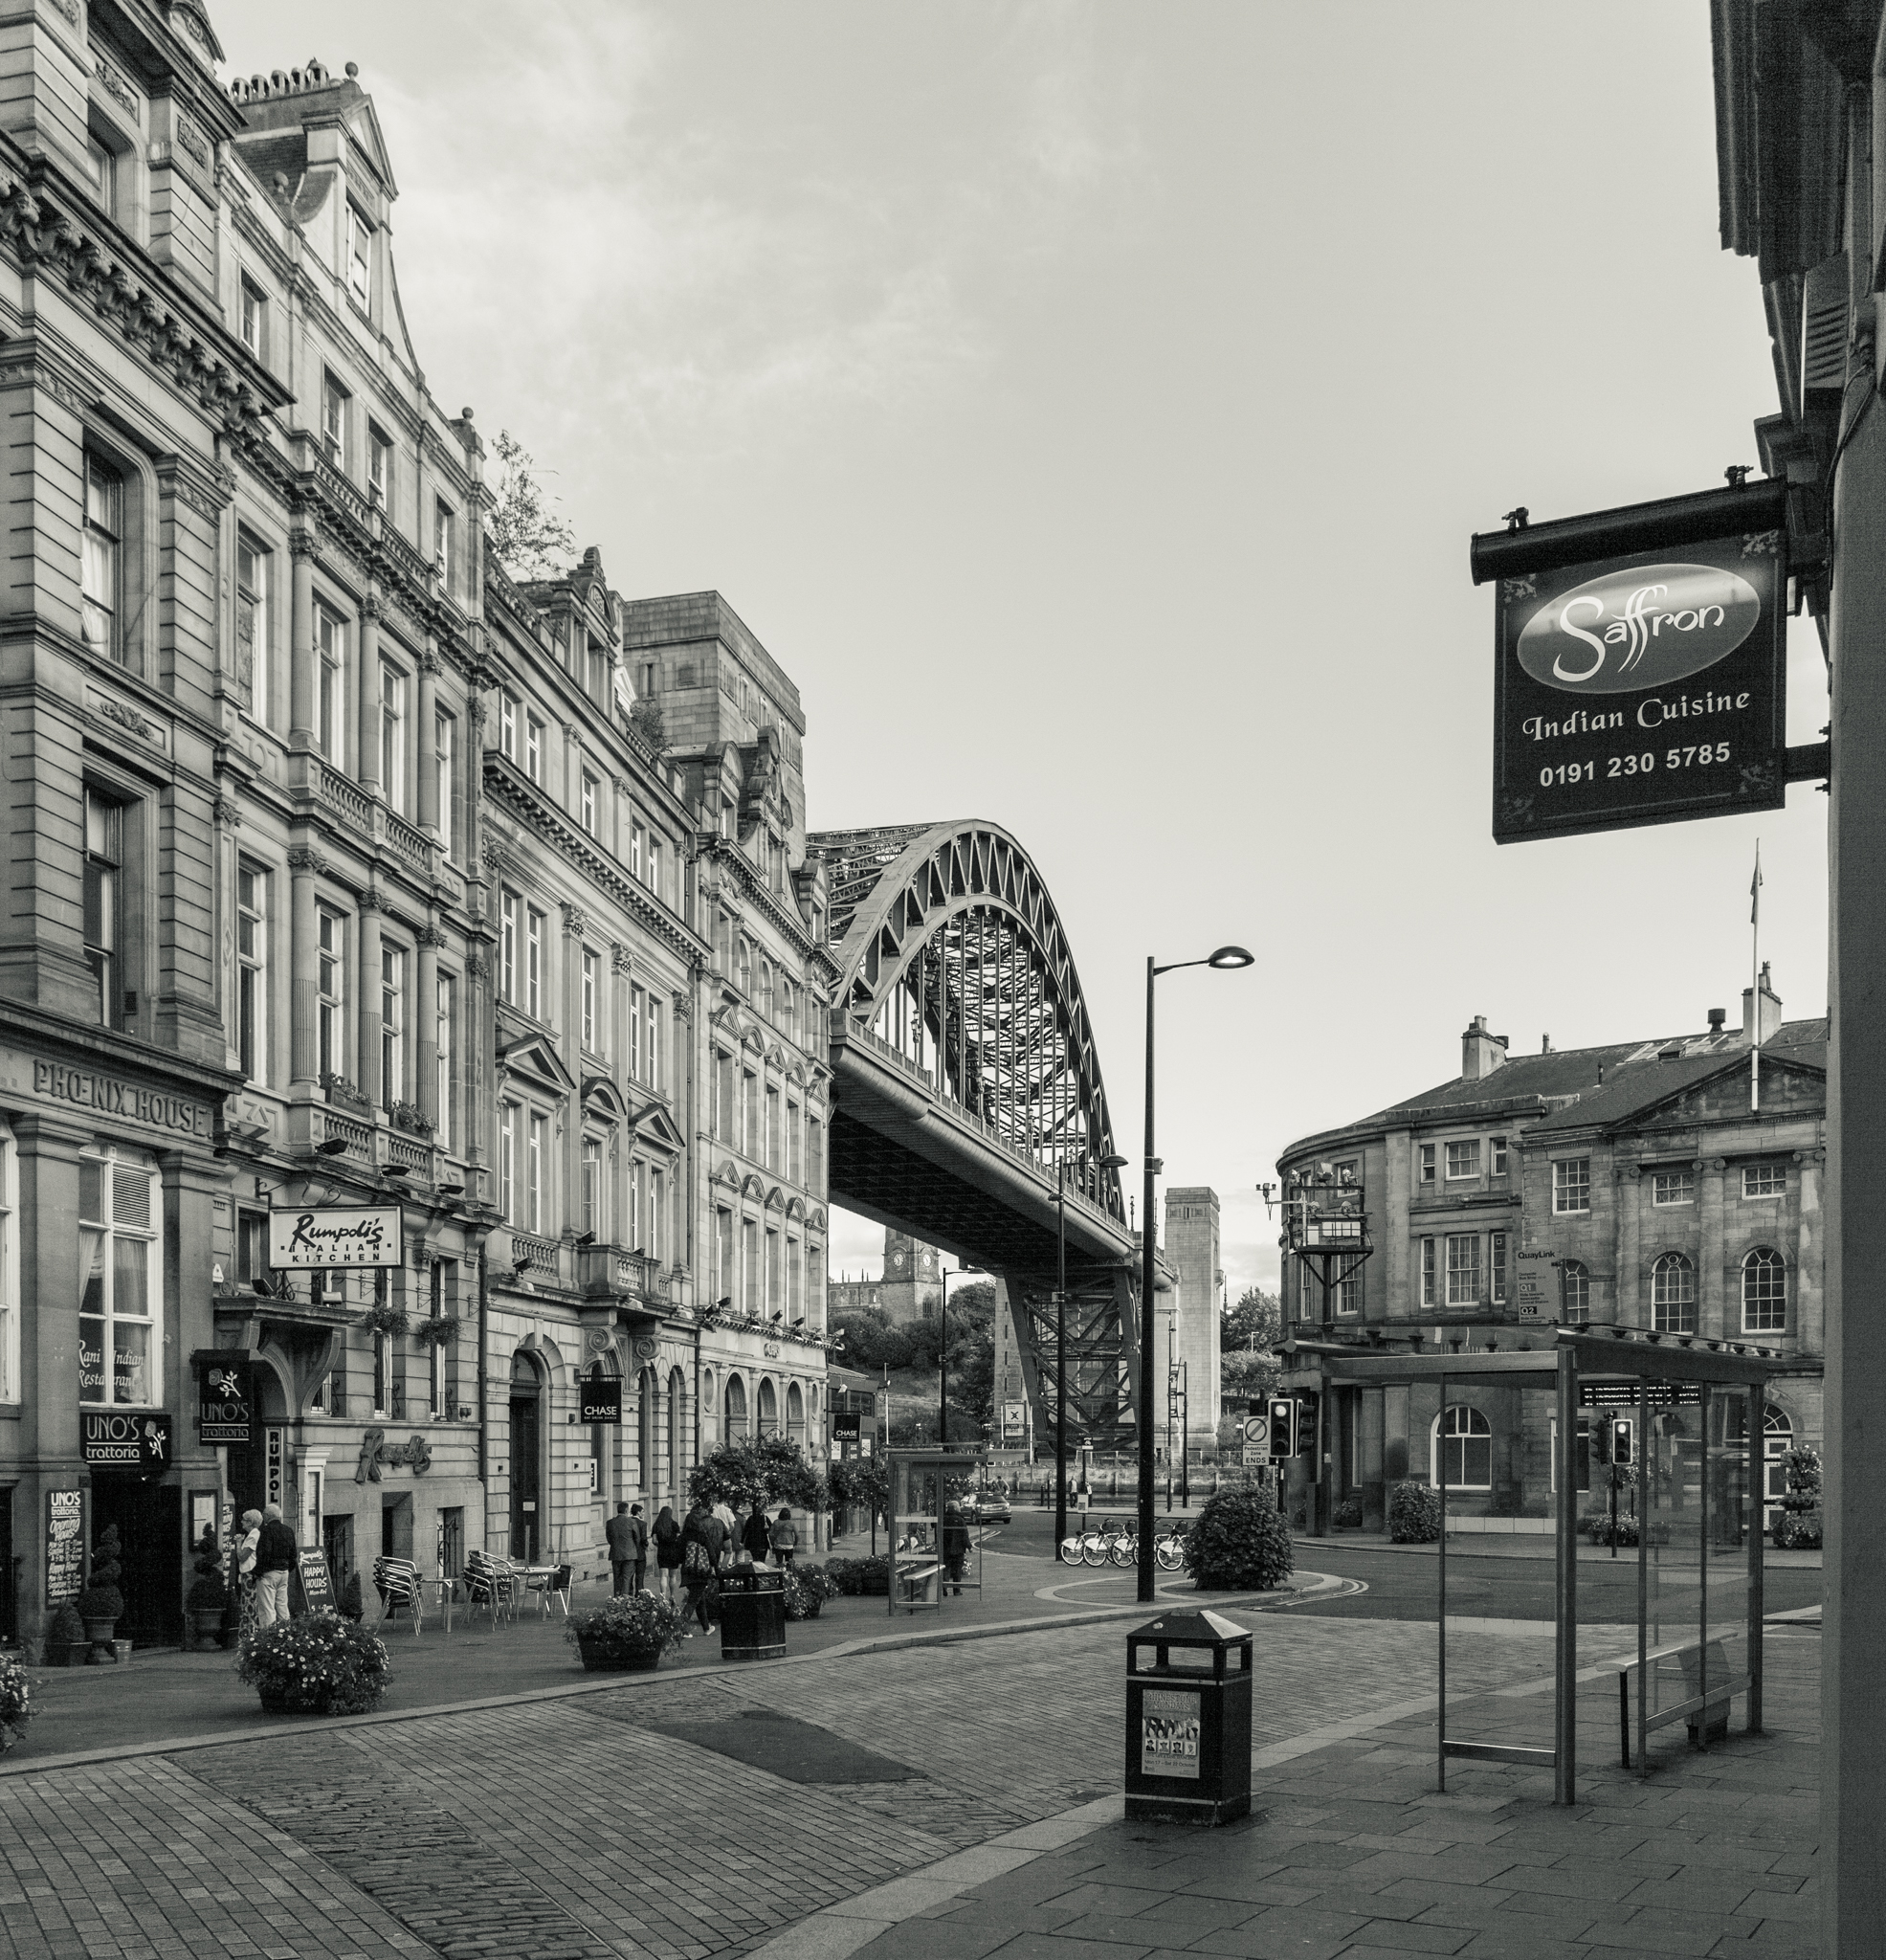 From the bottom of the Side, you can get a view of the Tyne bridge and St Mary's church on the hill in the distance.